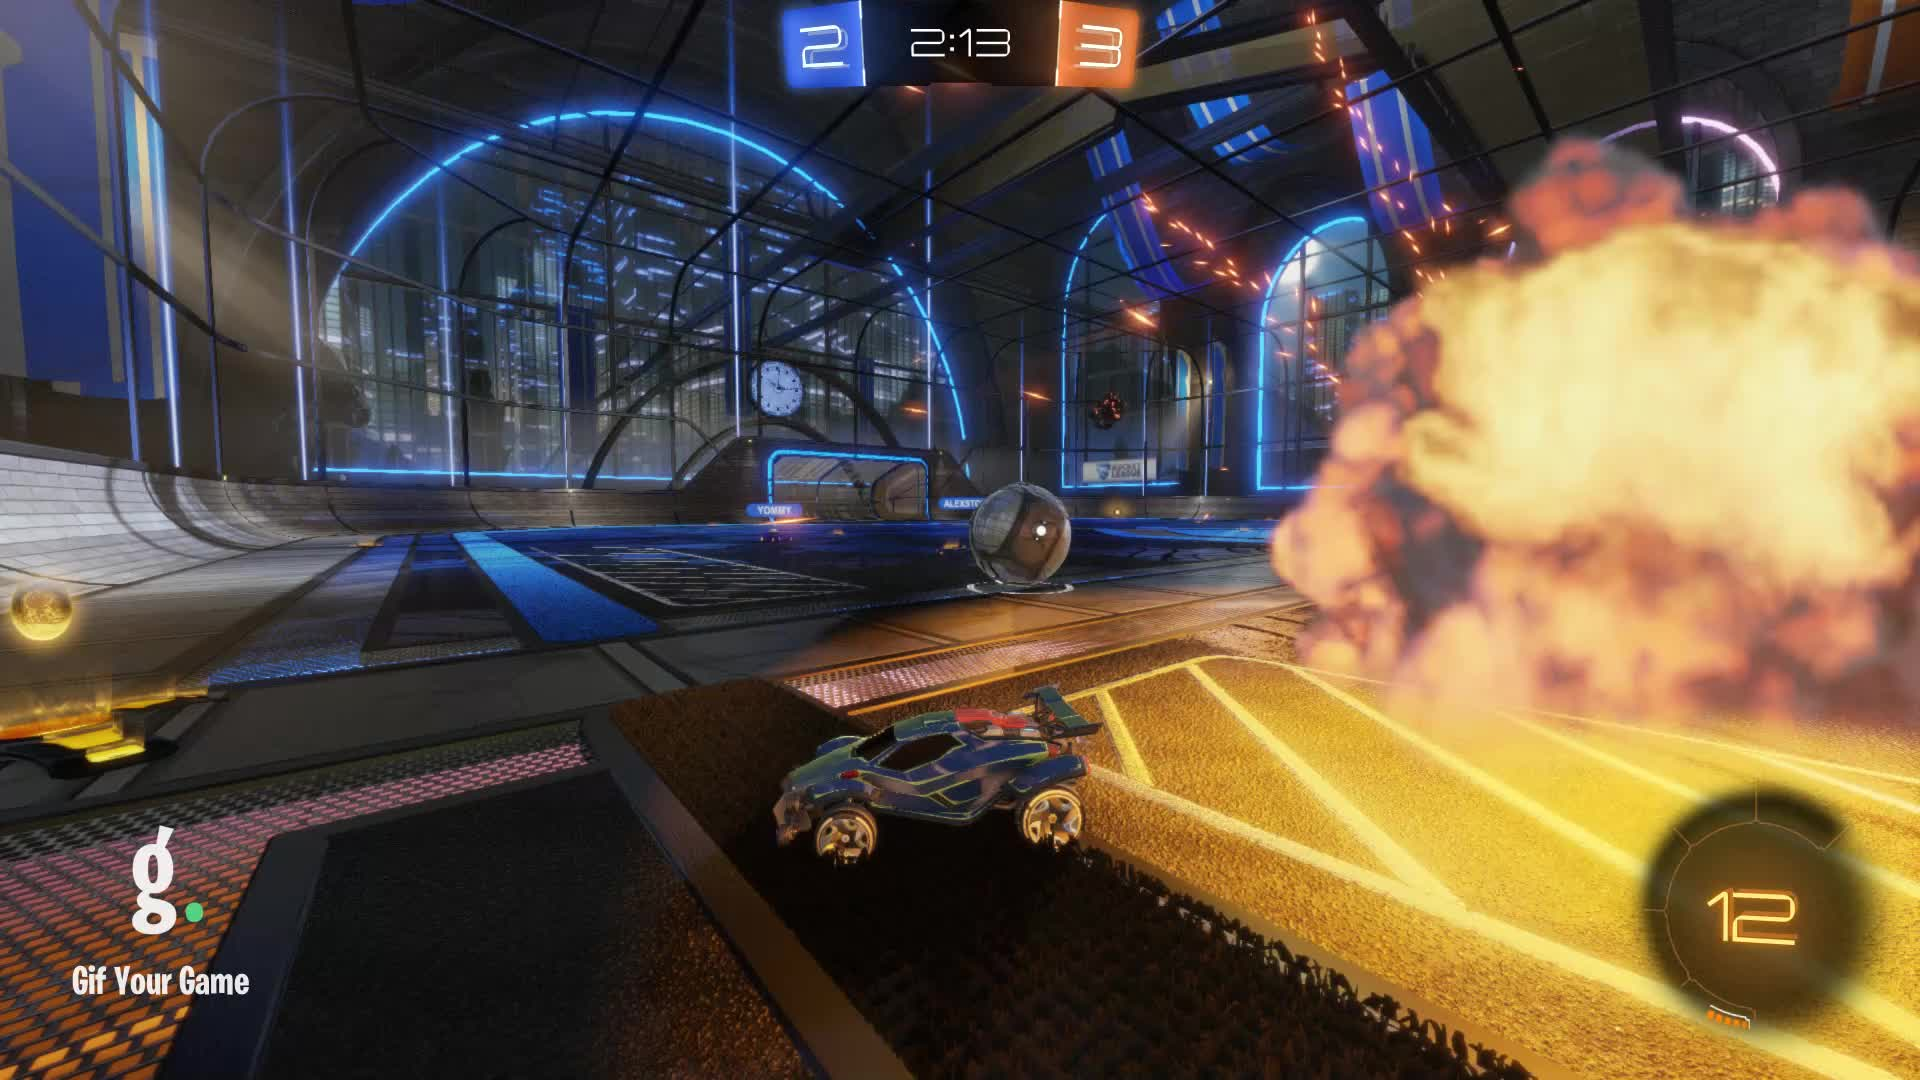 Gif Your Game, GifYourGame, Goal, ItWas...Justified, Rocket League, RocketLeague, Goal 6: ItWas...Justified GIFs